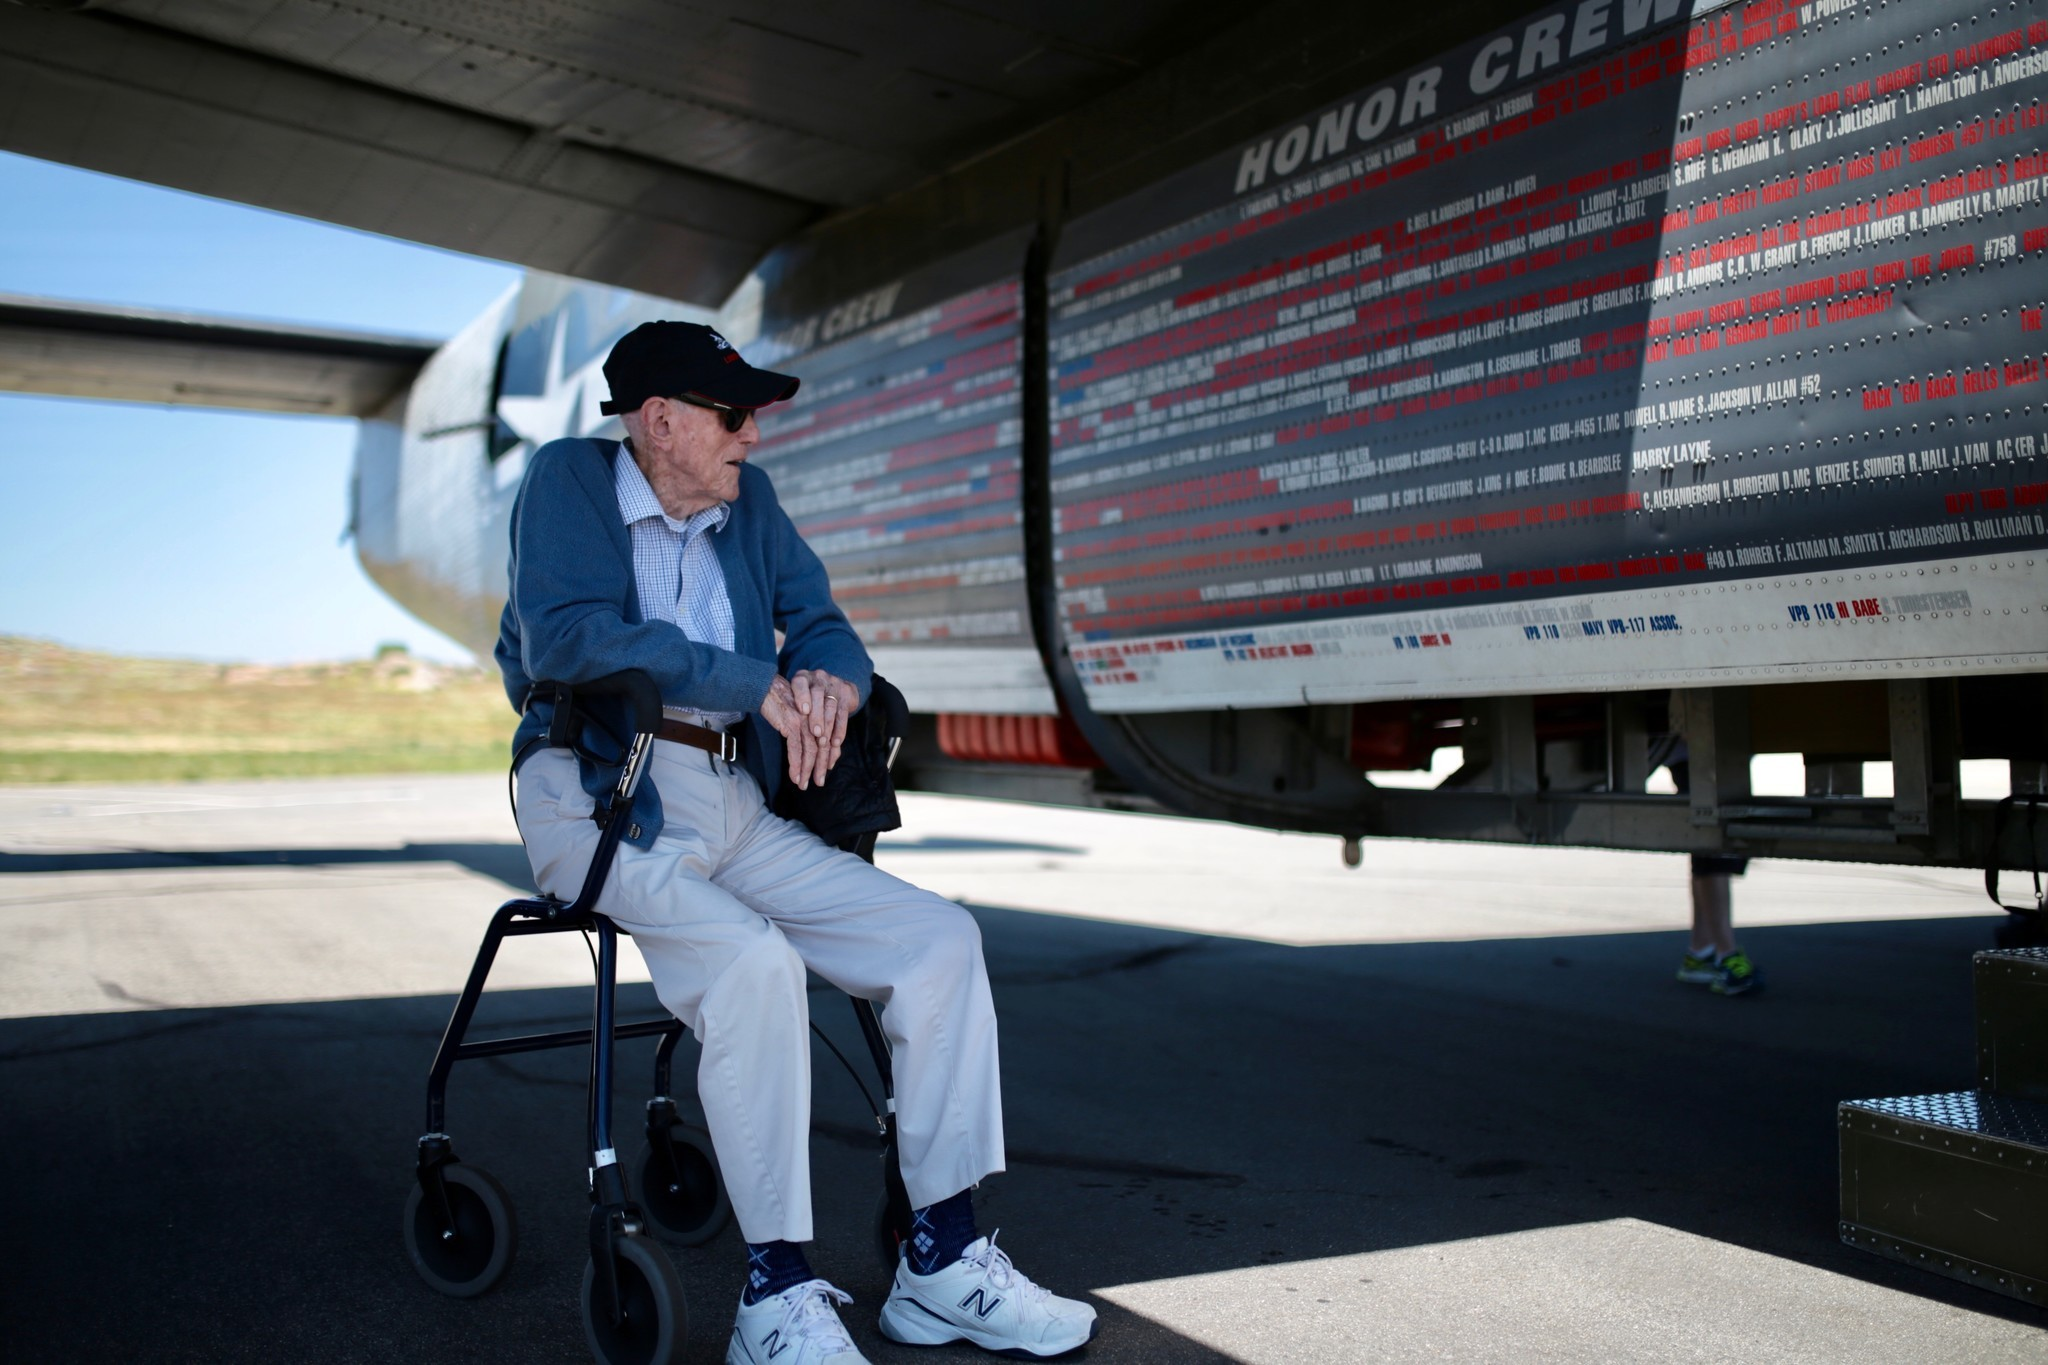 Alan Carlton, 98, took to the air again on May 4 aboard a B-24 in the Wings of Freedom tour that flew from Ramona to Carlsbad. The Carmel Valley resident spent more than a year in a Nazi prison camp after his B-24 was shot down during a bombing run over Germany in 1944.